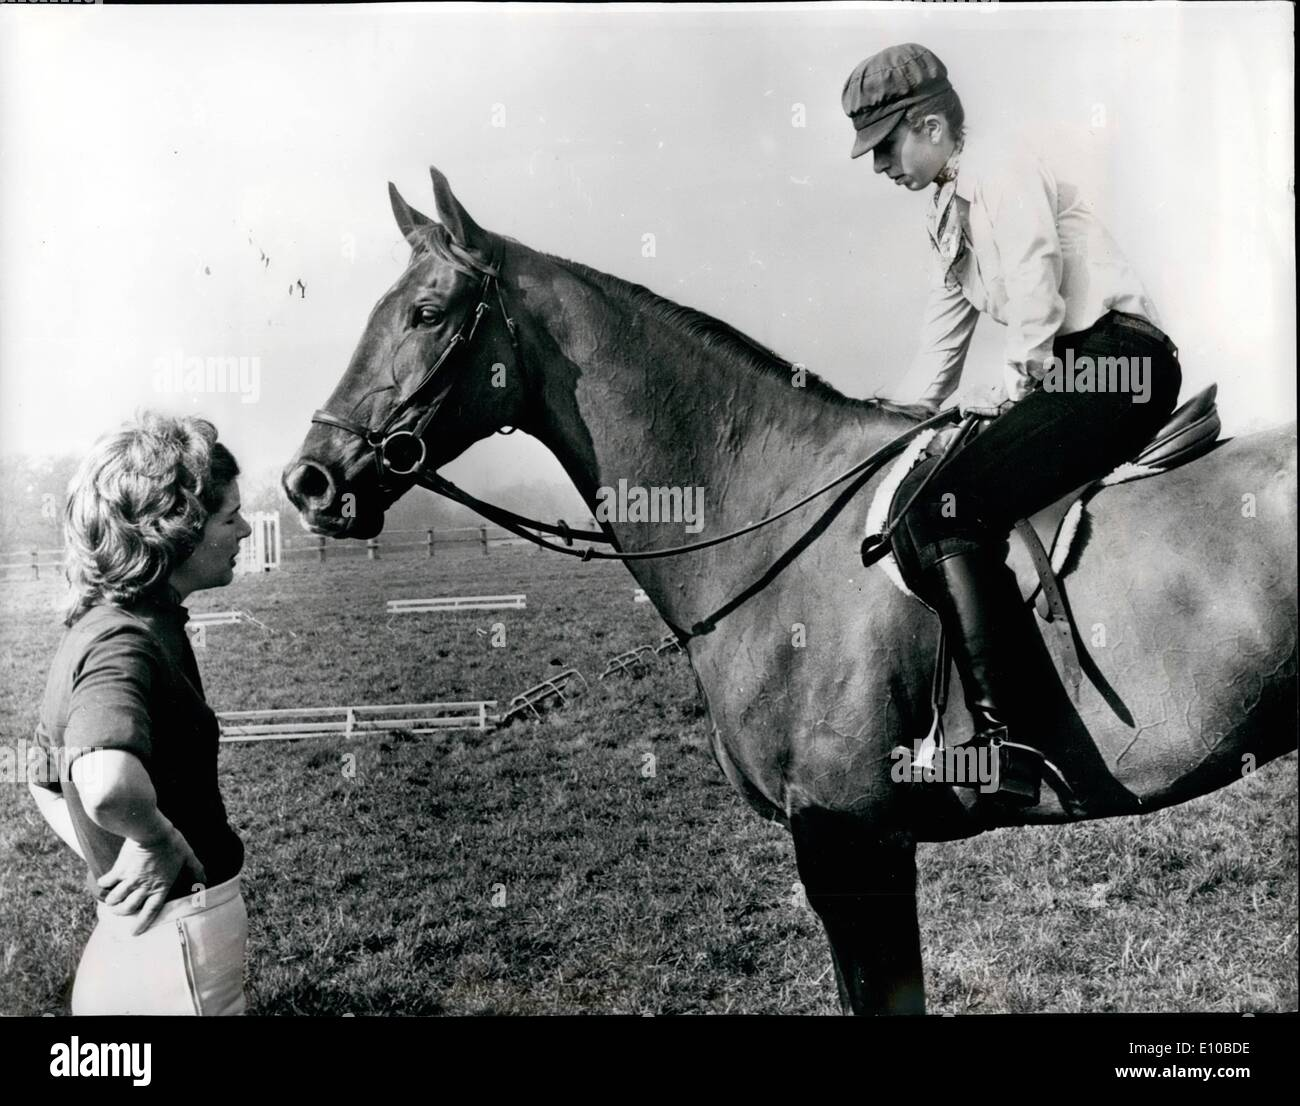 Mar. 03, 1972 - Princess Anne Schooling Her Horses In Preparation For The Tough Season Ahead: Princess Anne, the Stock Photo